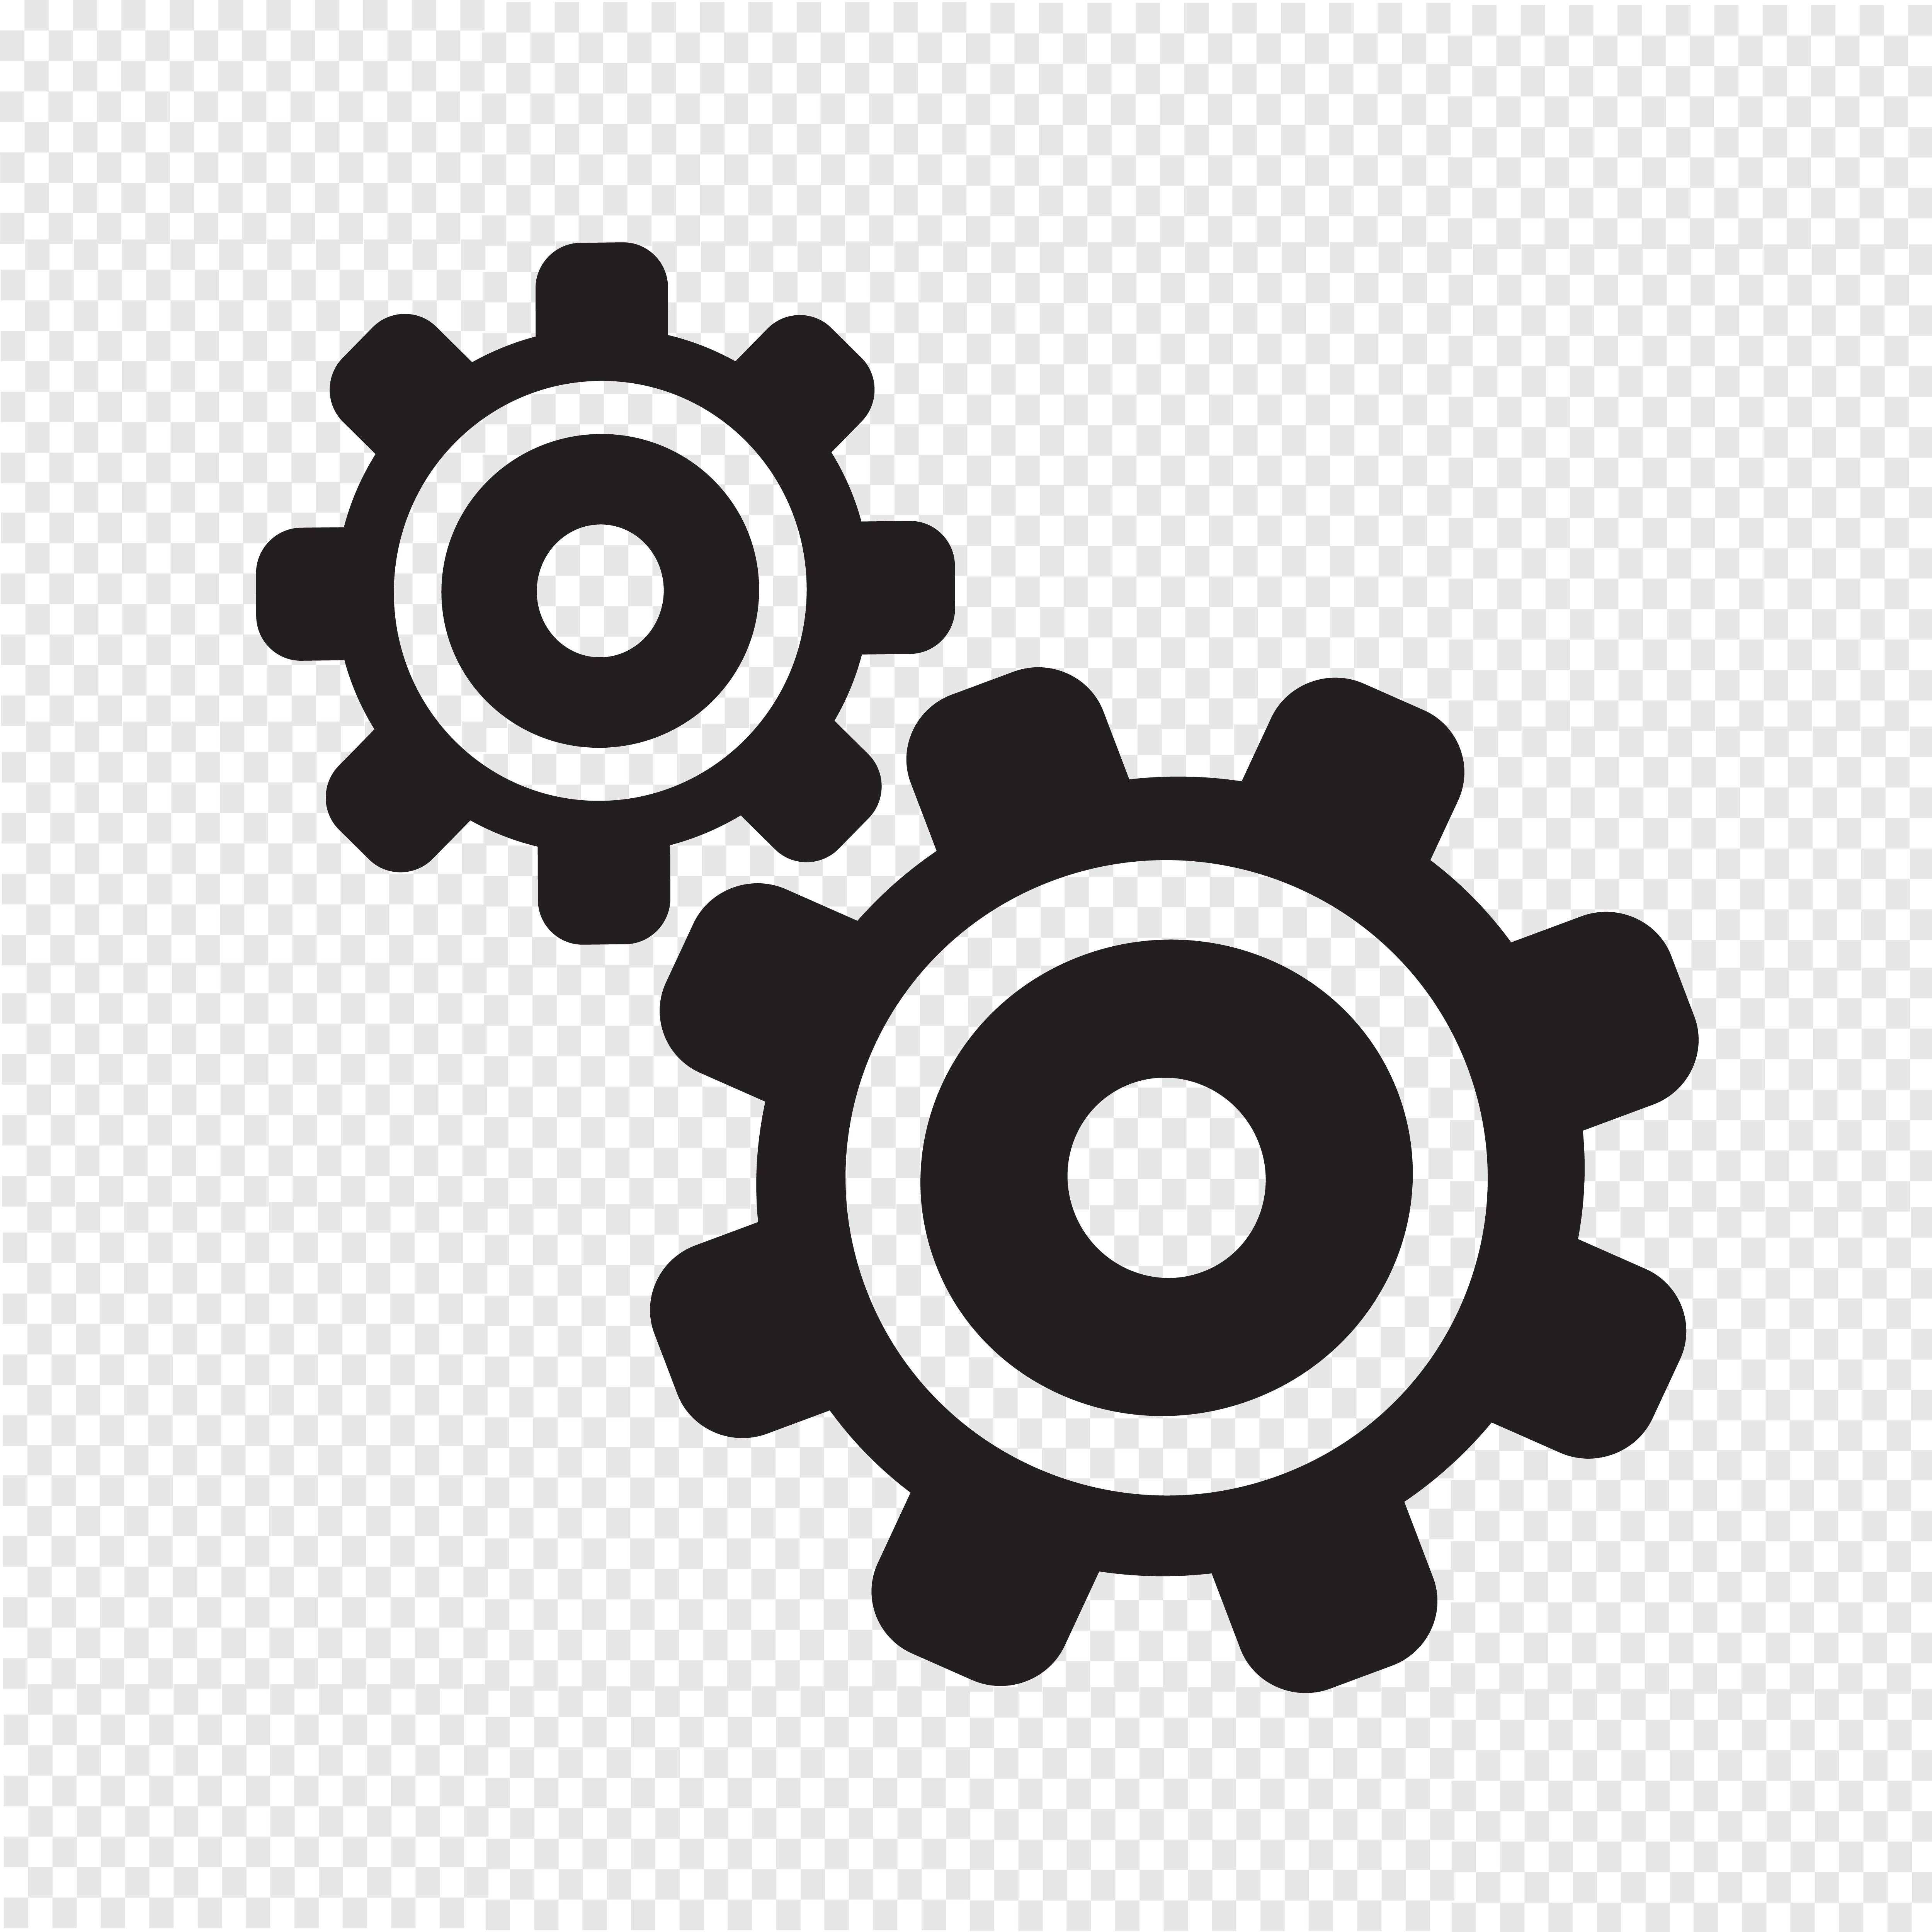 gear-icon-symbol-sign-vector Teamwork Letter Template on job application letter template, team letter template, great job letter template, mentoring letter template, performance letter template, pastor appreciation letter template, leadership letter template, safety letter template, job motivation letter template, reward letter template,